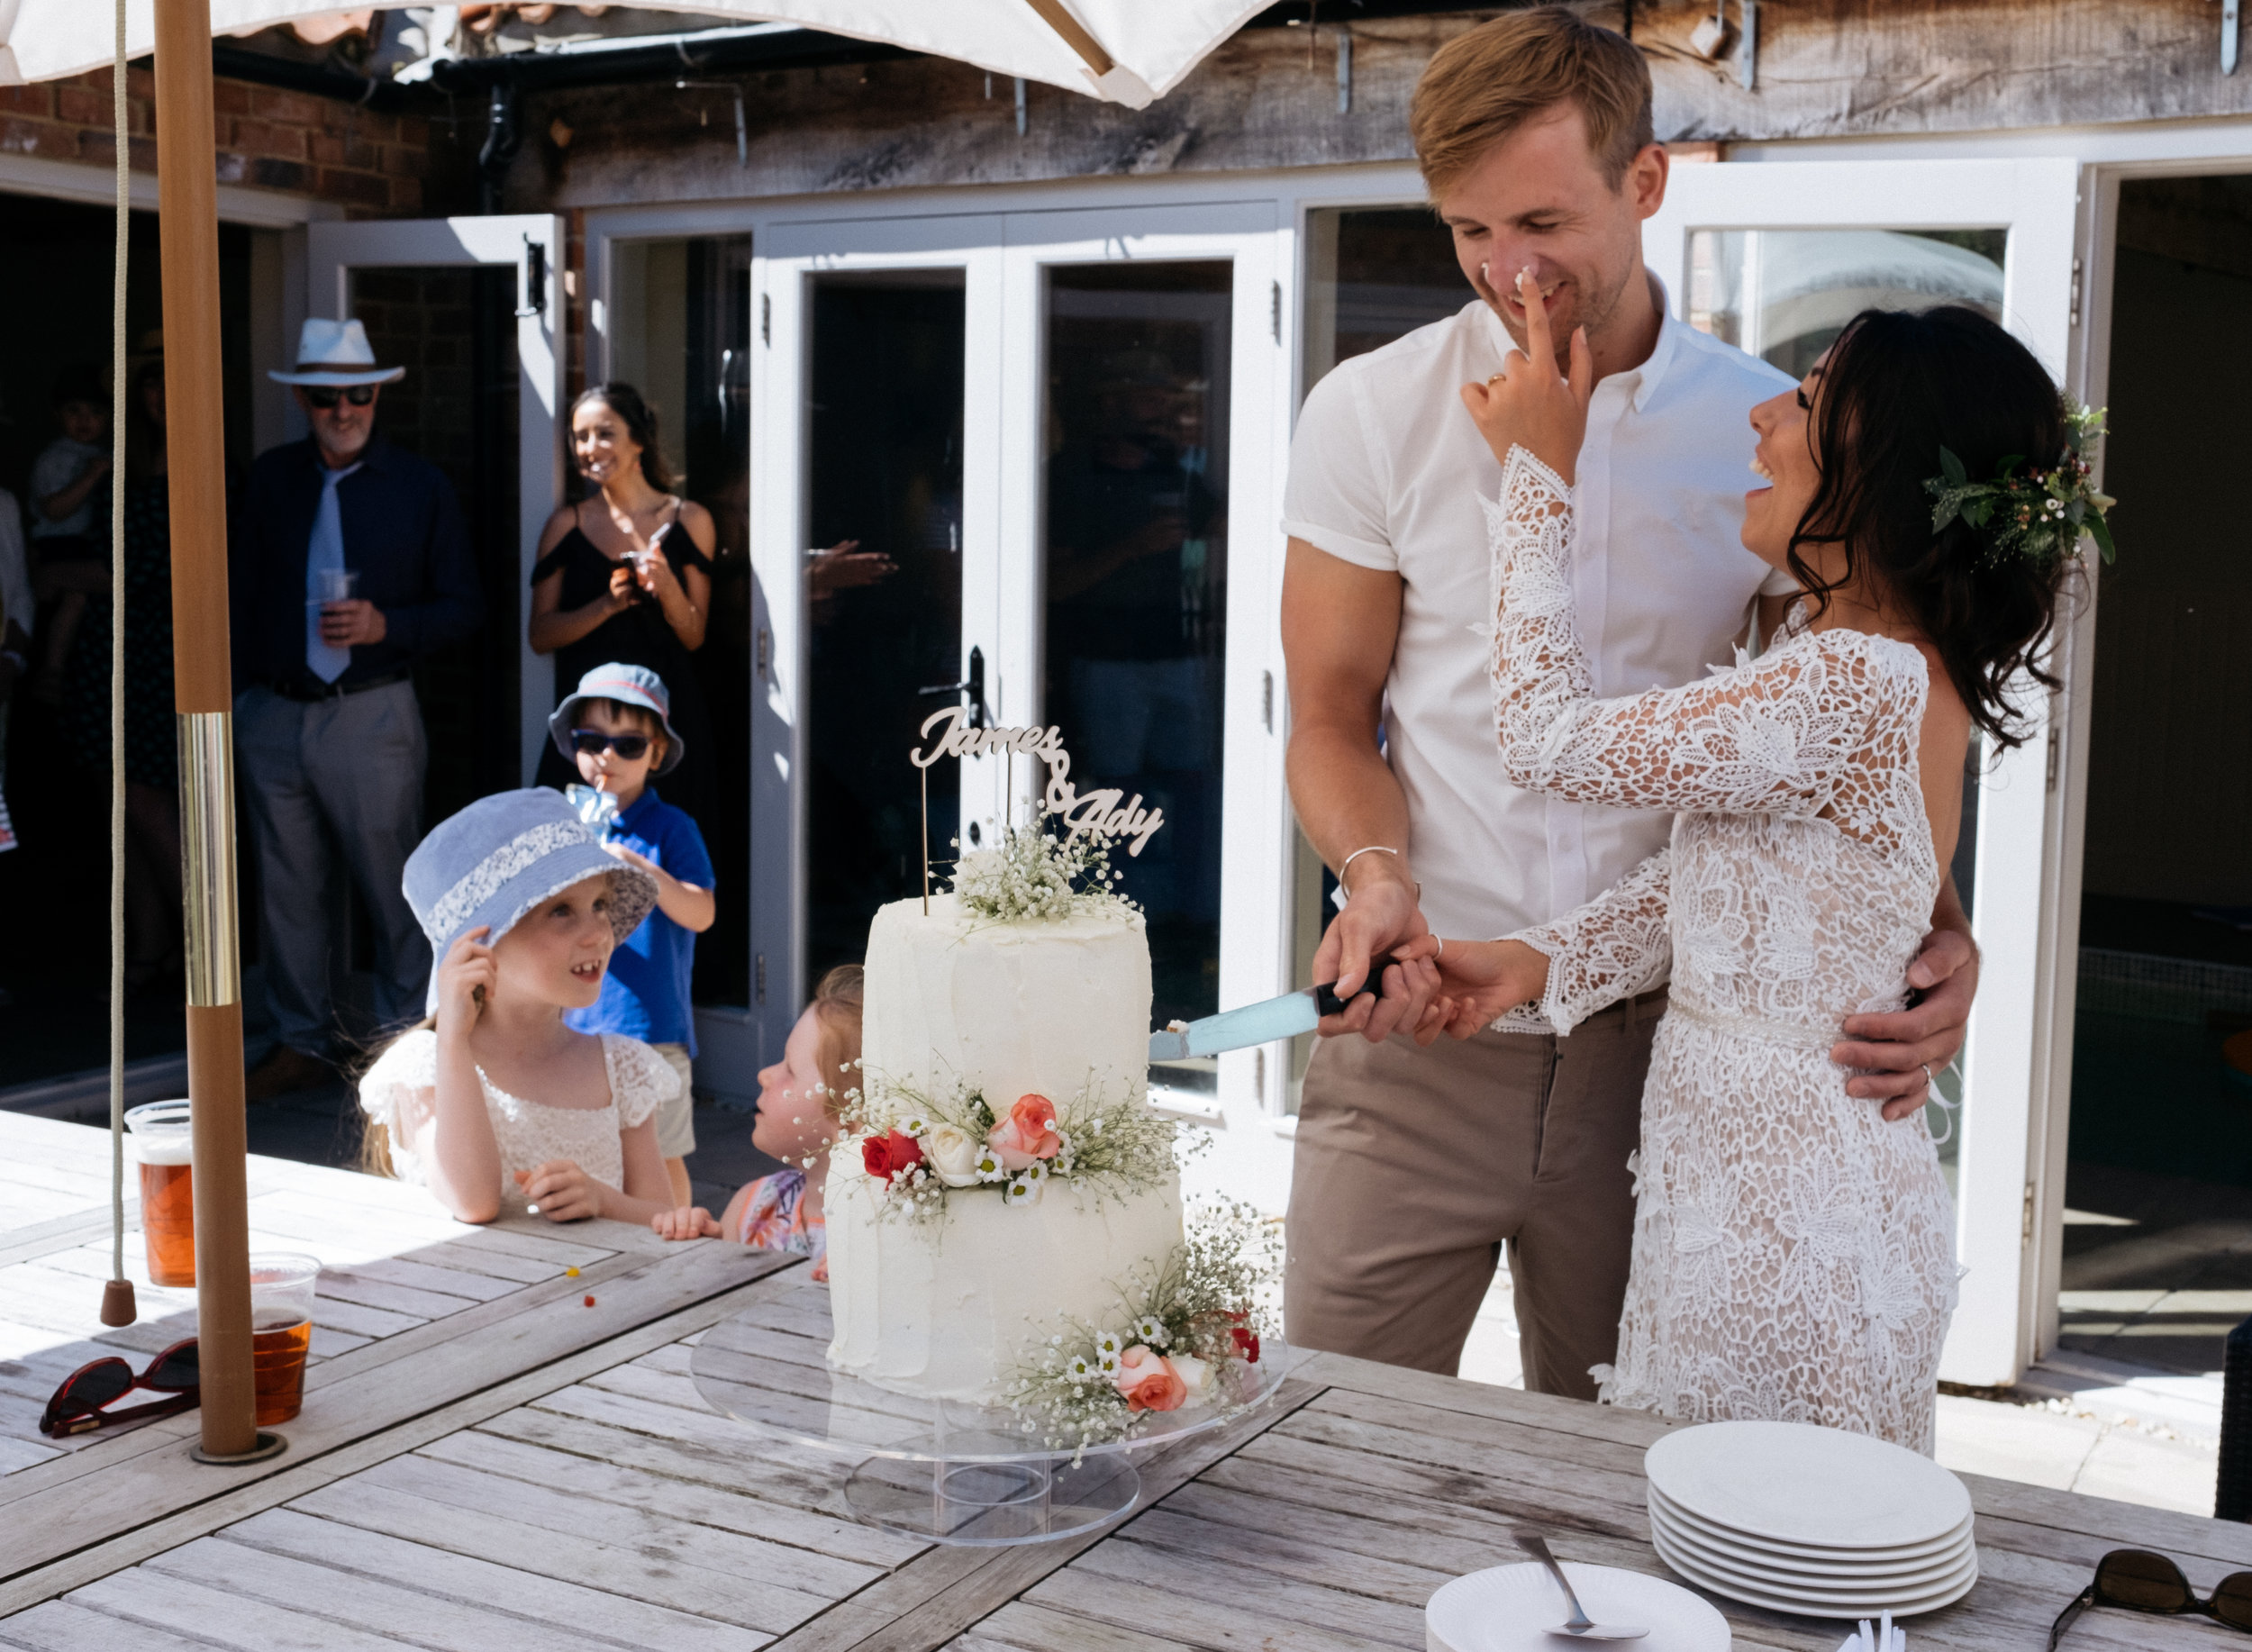 Bride smashing cake on groom's face during cake cutting